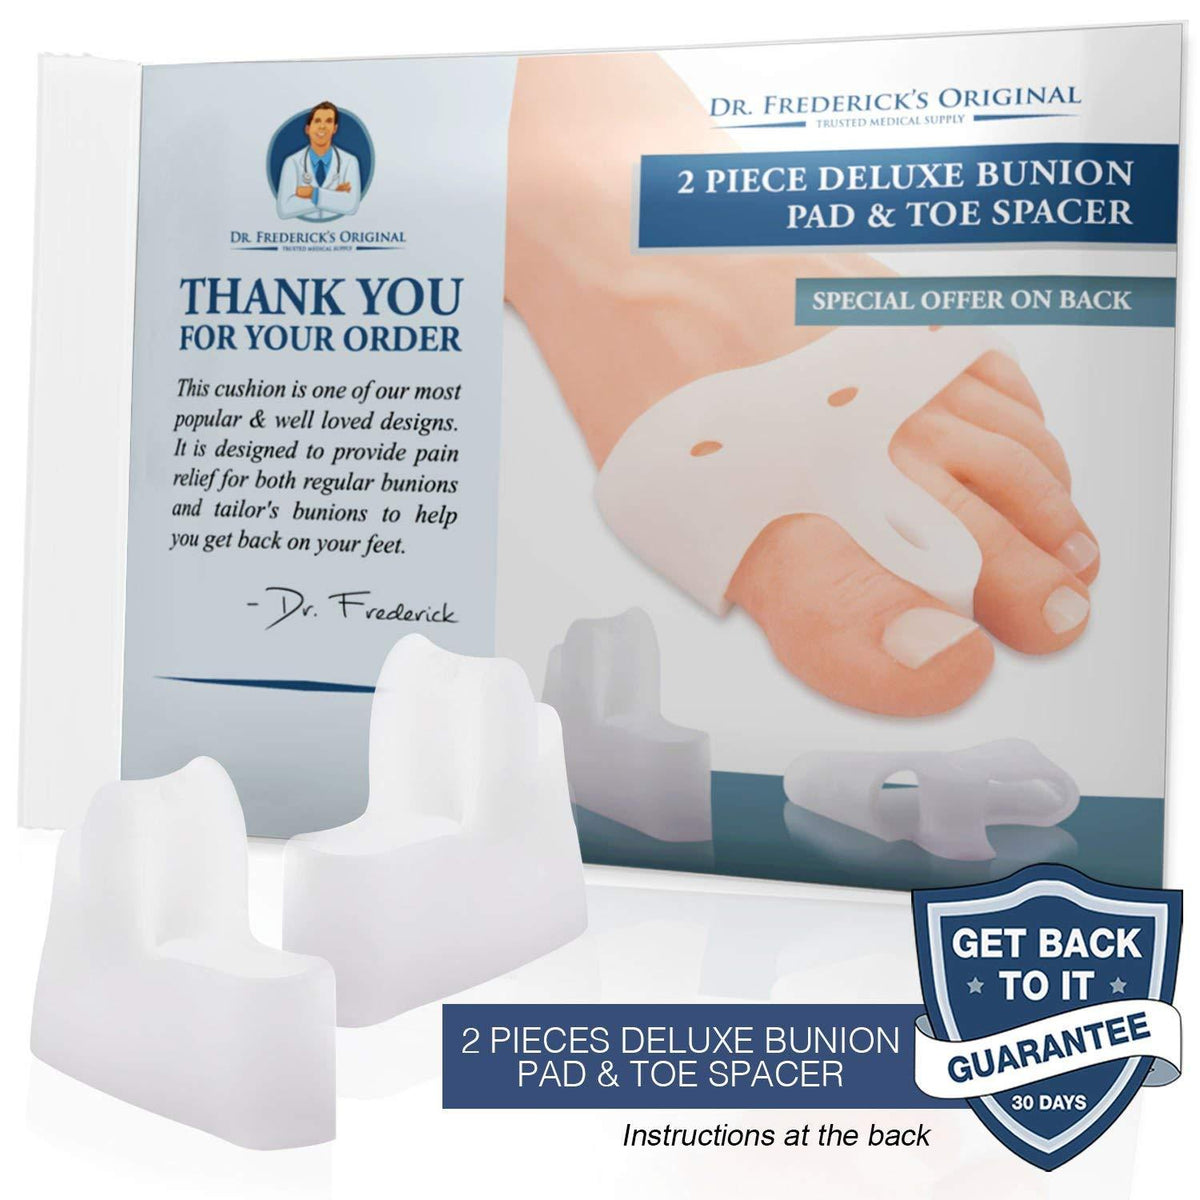 Dr. Frederick's Original Deluxe Bunion Pad & Toe Spacer -- 2 Pieces - for Bunions and Tailor's Bunions Foot Pain Dr. Frederick's Original